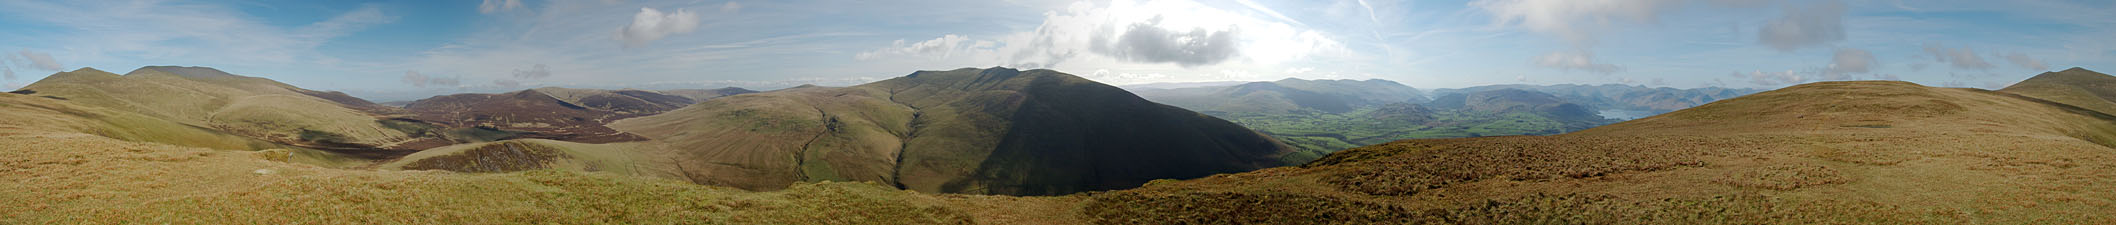 Lonscale Fell - Complete Panorama